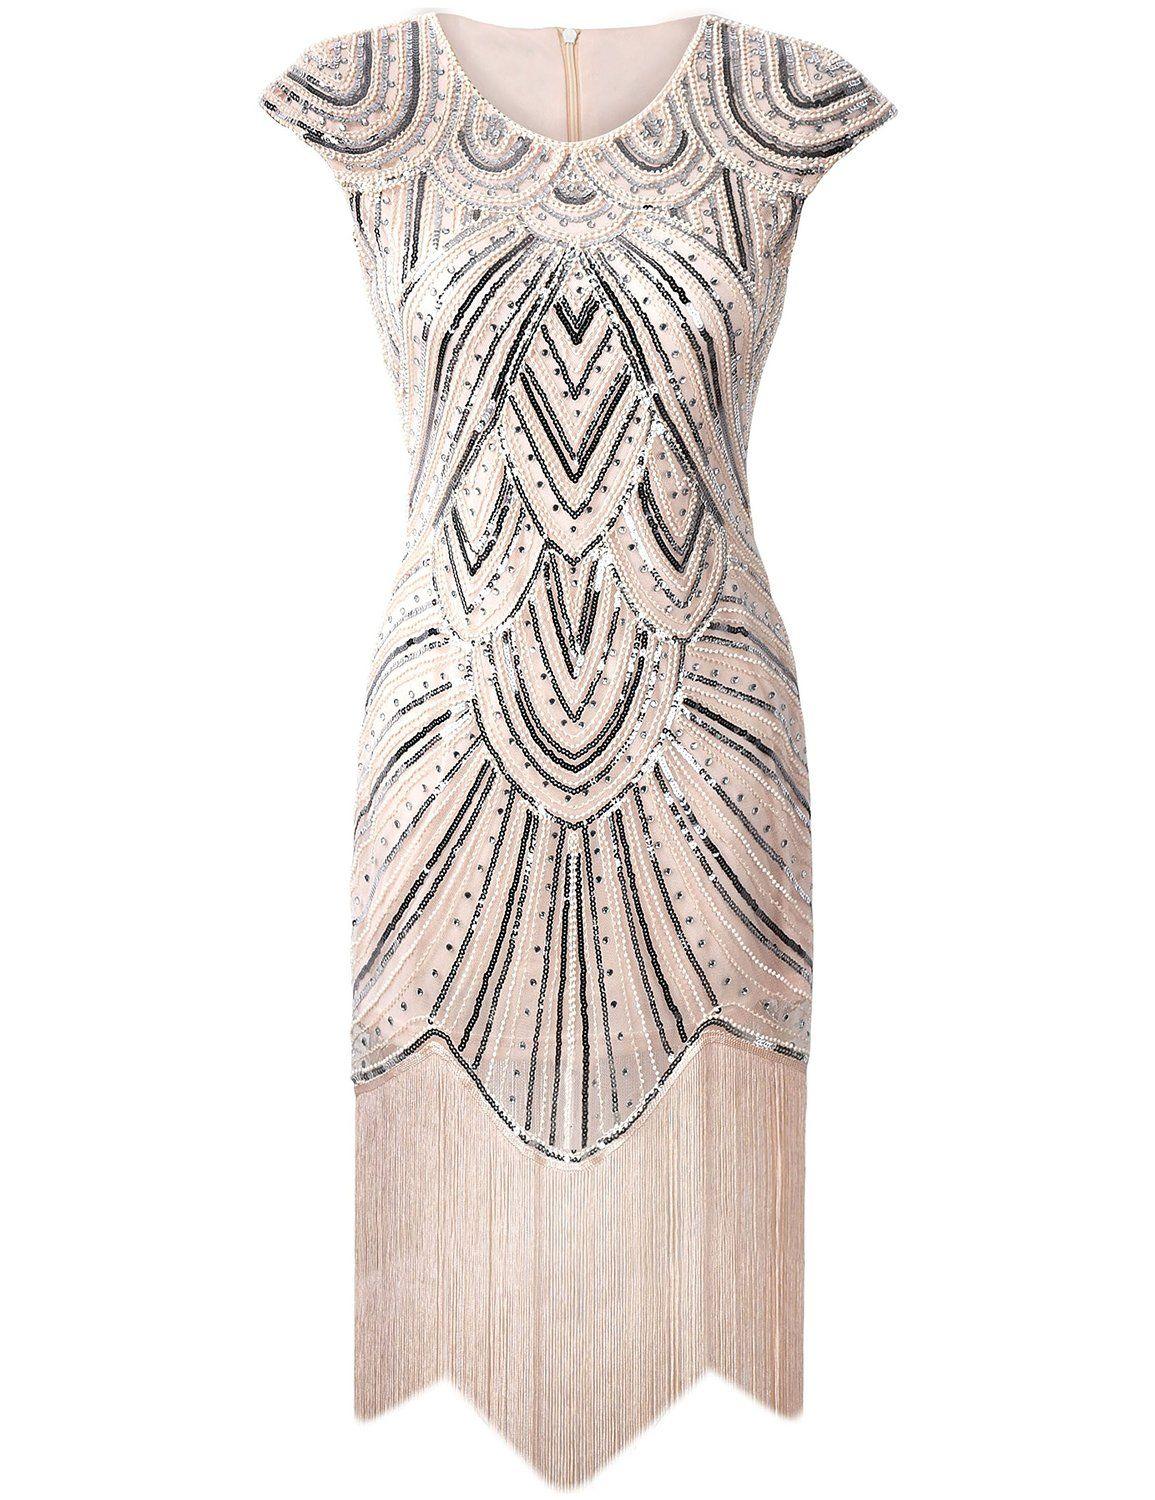 1920s Dresses UK | Flappers, 1920s and Gatsby